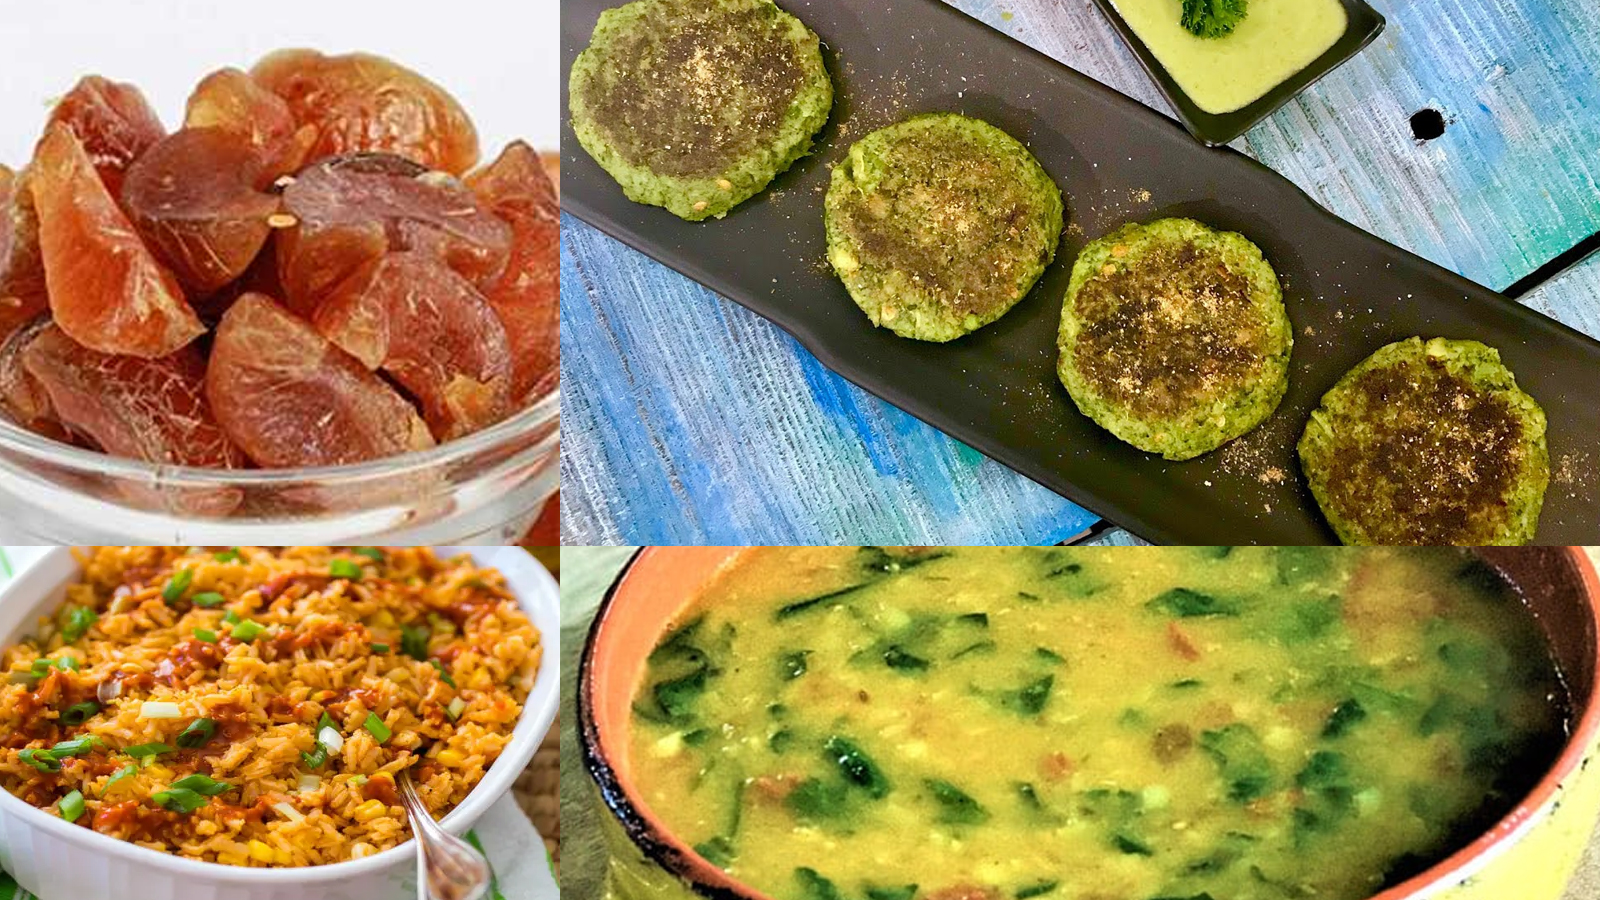 Top-5-Immunity-Boosting-Recipes-for-Your-Kids.jpg